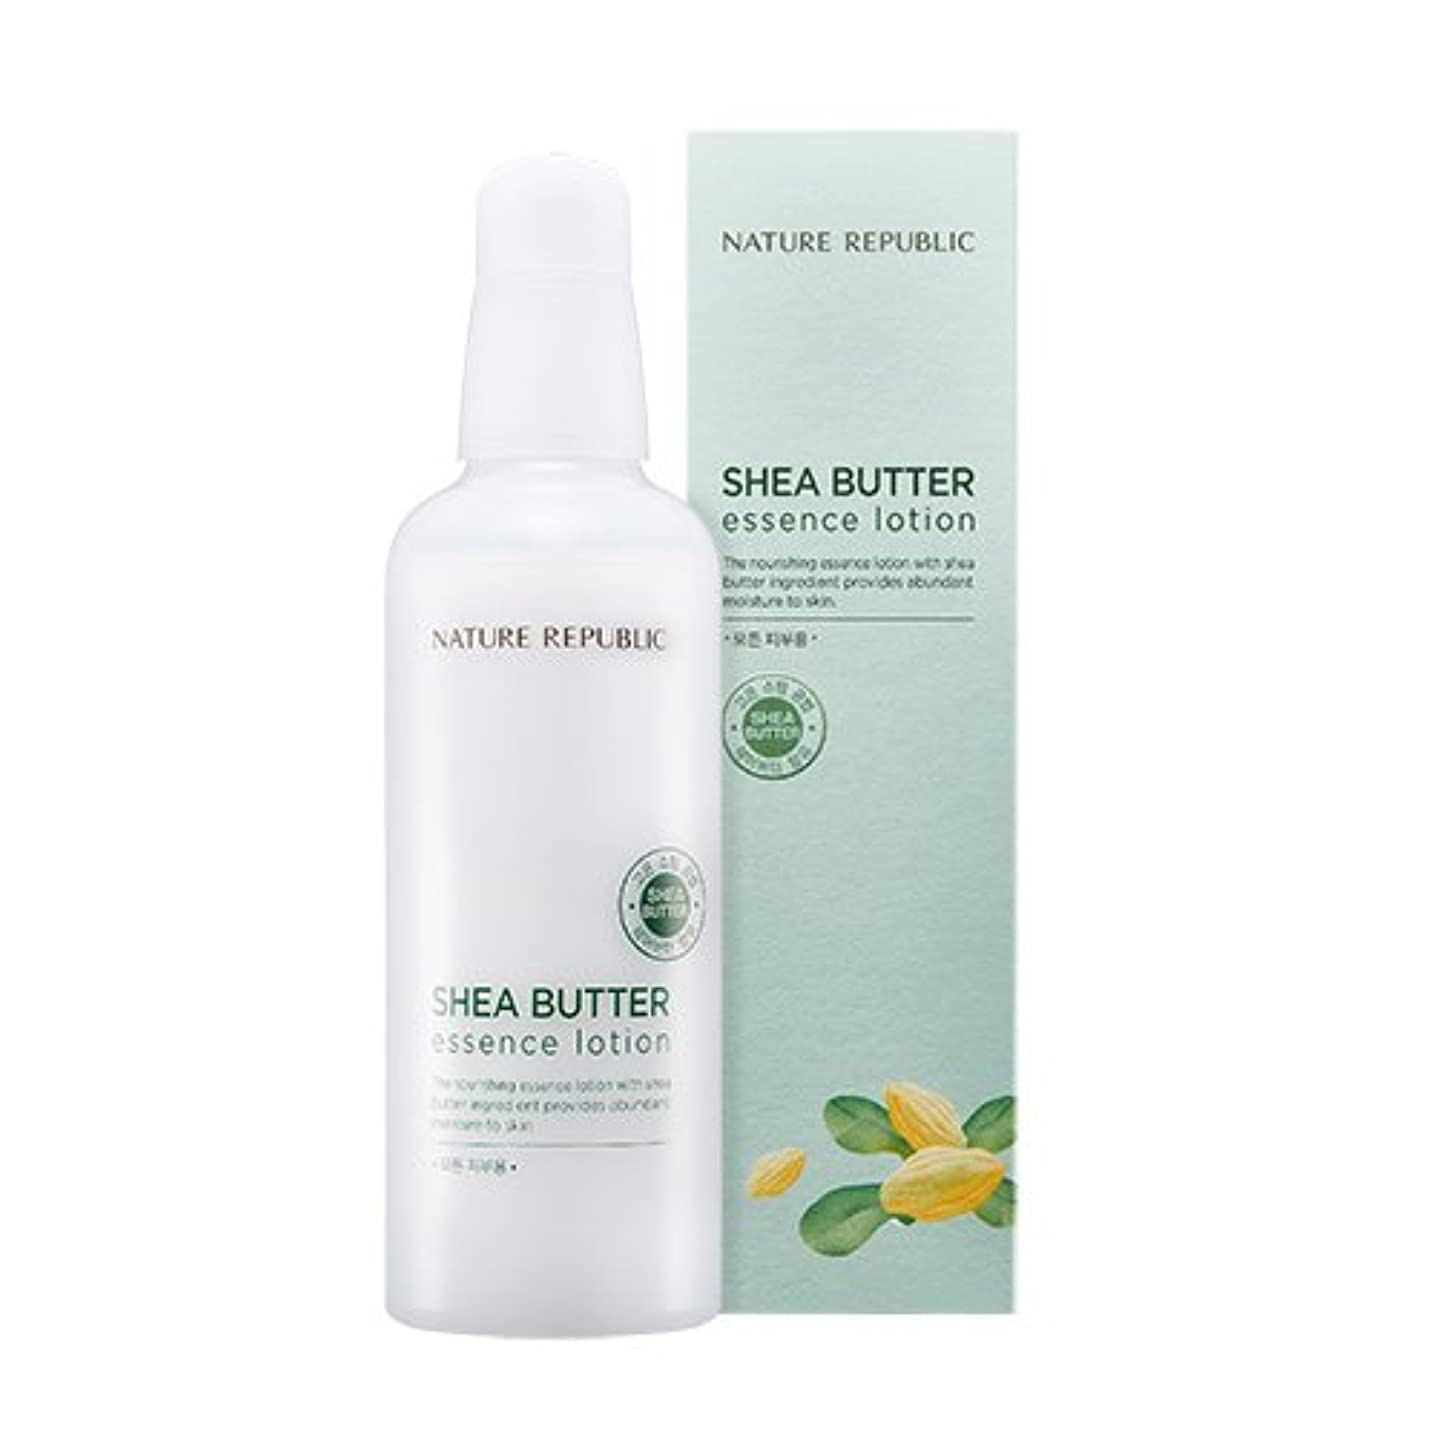 NATURE REPUBLIC Shea Butter Essence Lotion ネイチャーリパブリック シェアバターエッセンスローション [2017 NEW] [並行輸入品]